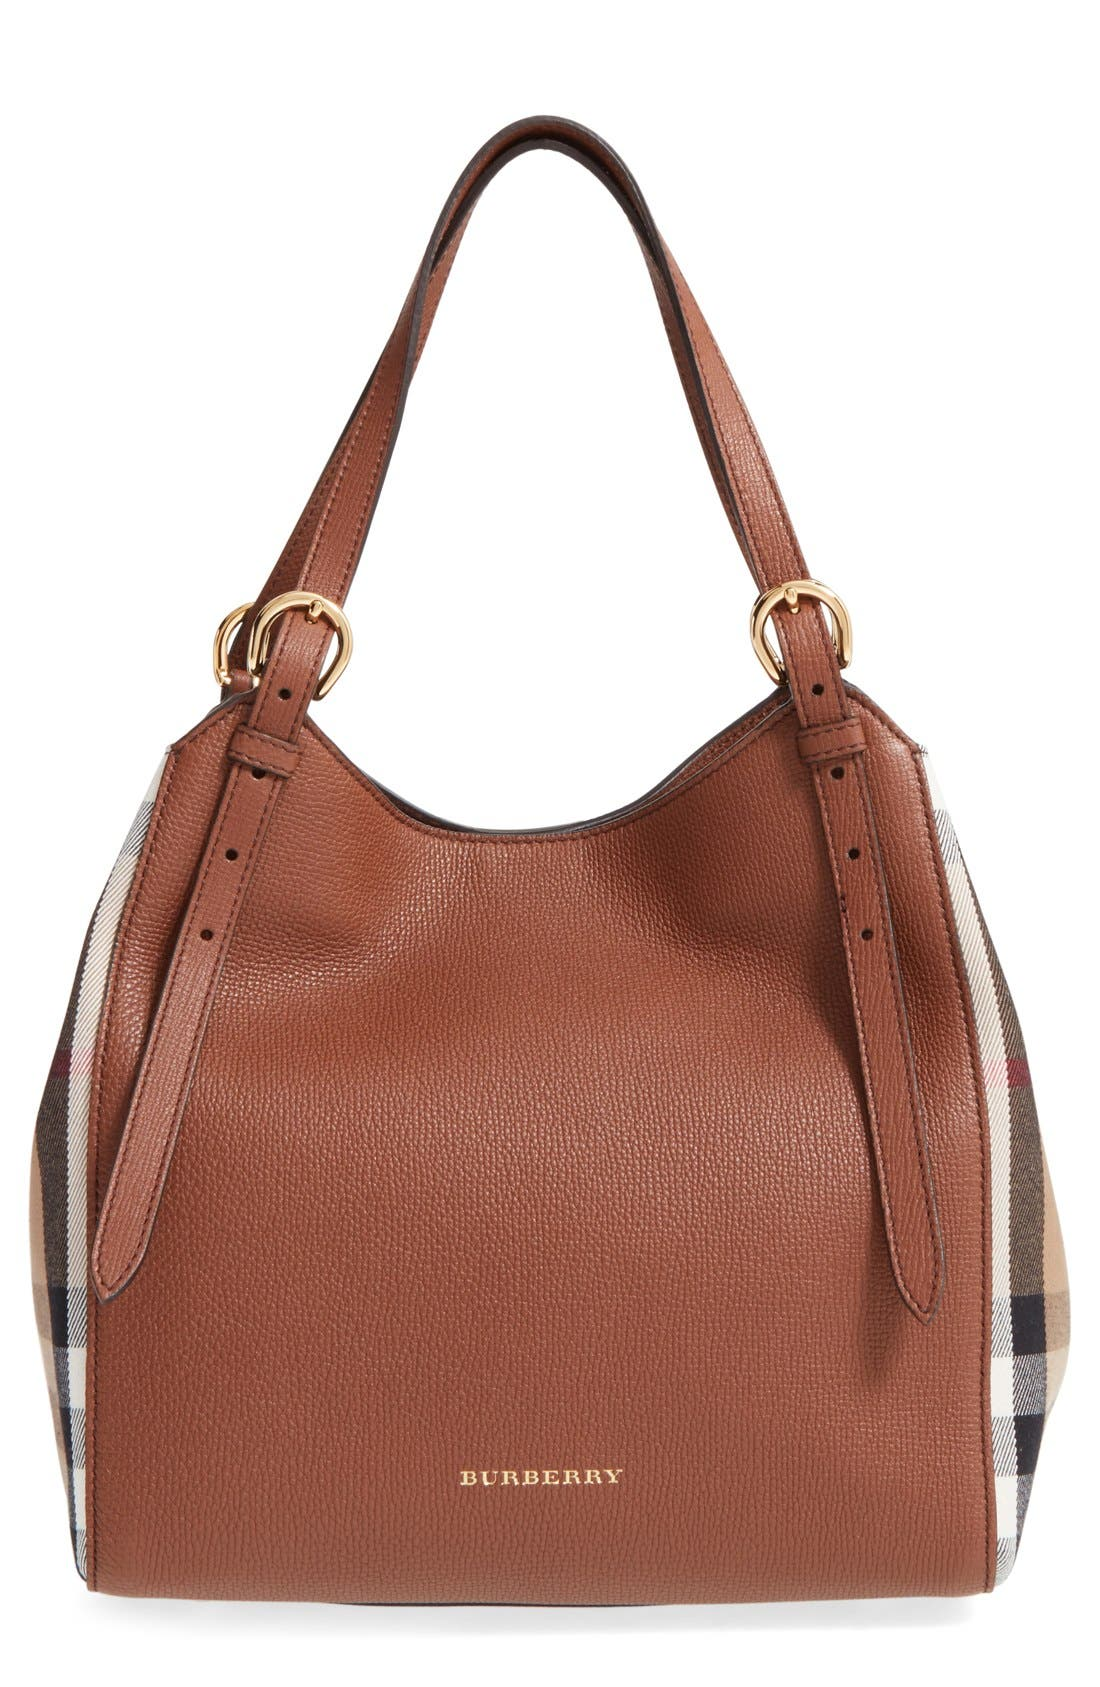 Main Image - Burberry 'Canterbury' House Check & Leather Tote